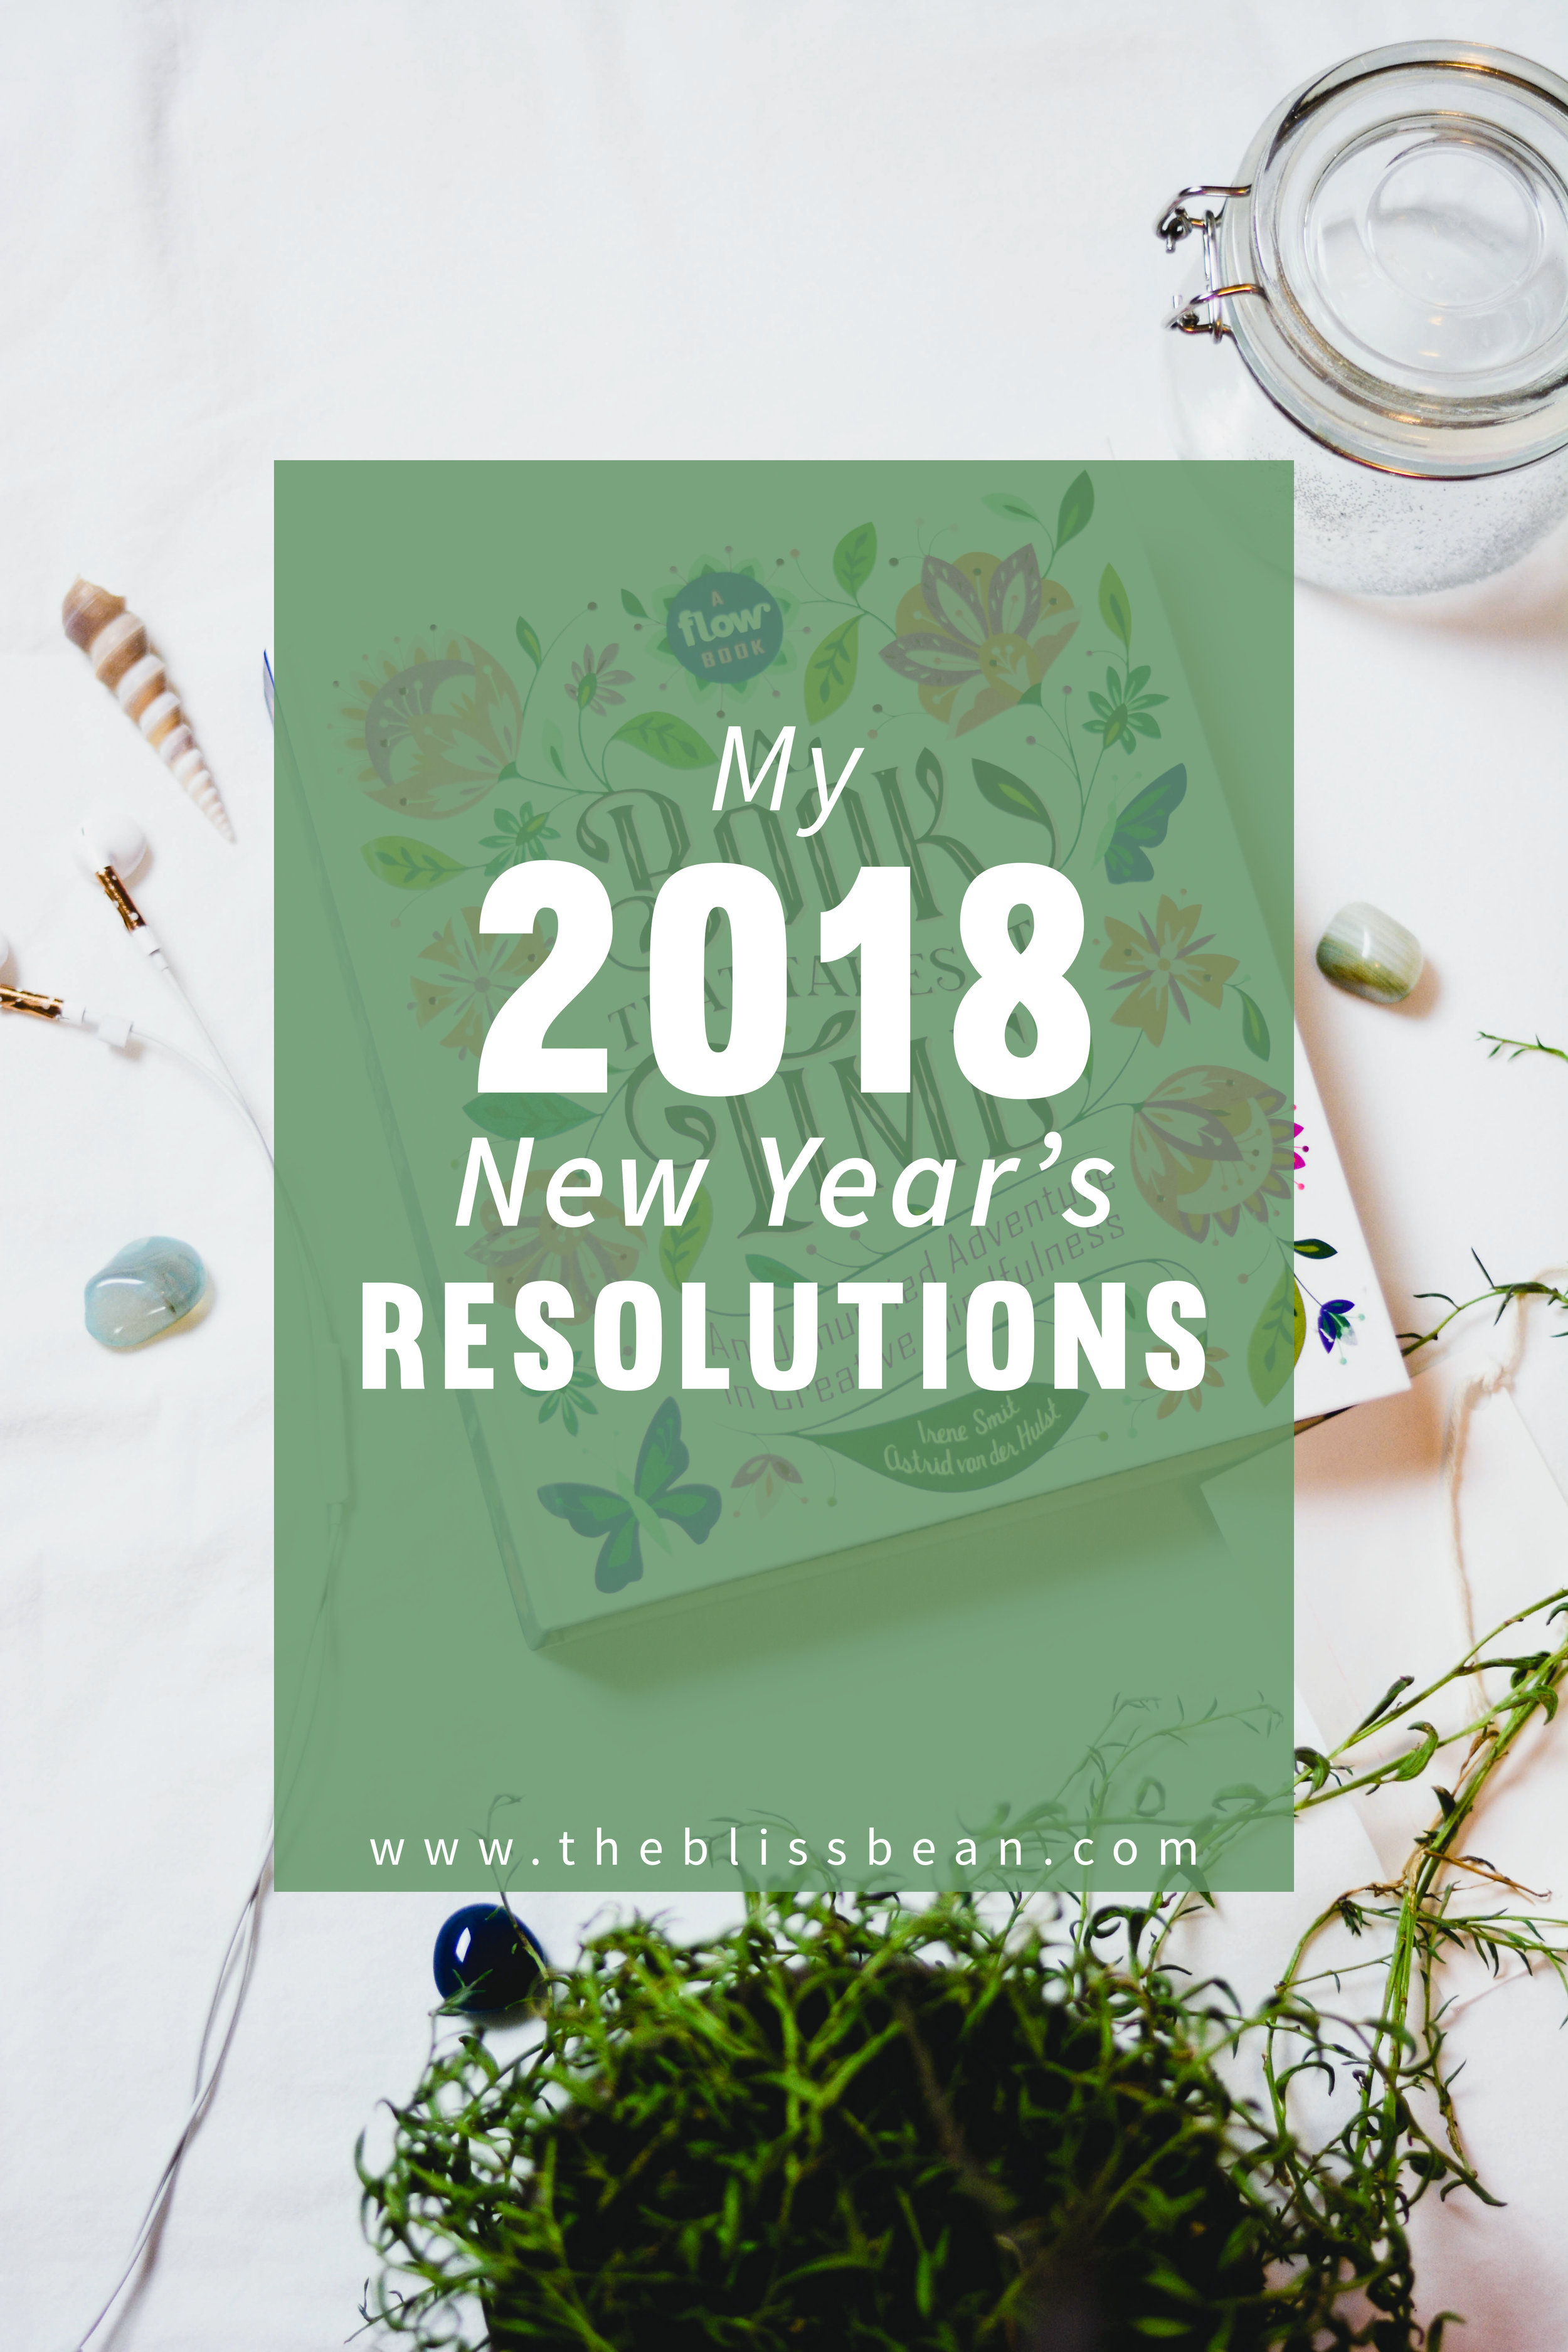 2018 New Year's Resolutions Blog Post Cover.jpg